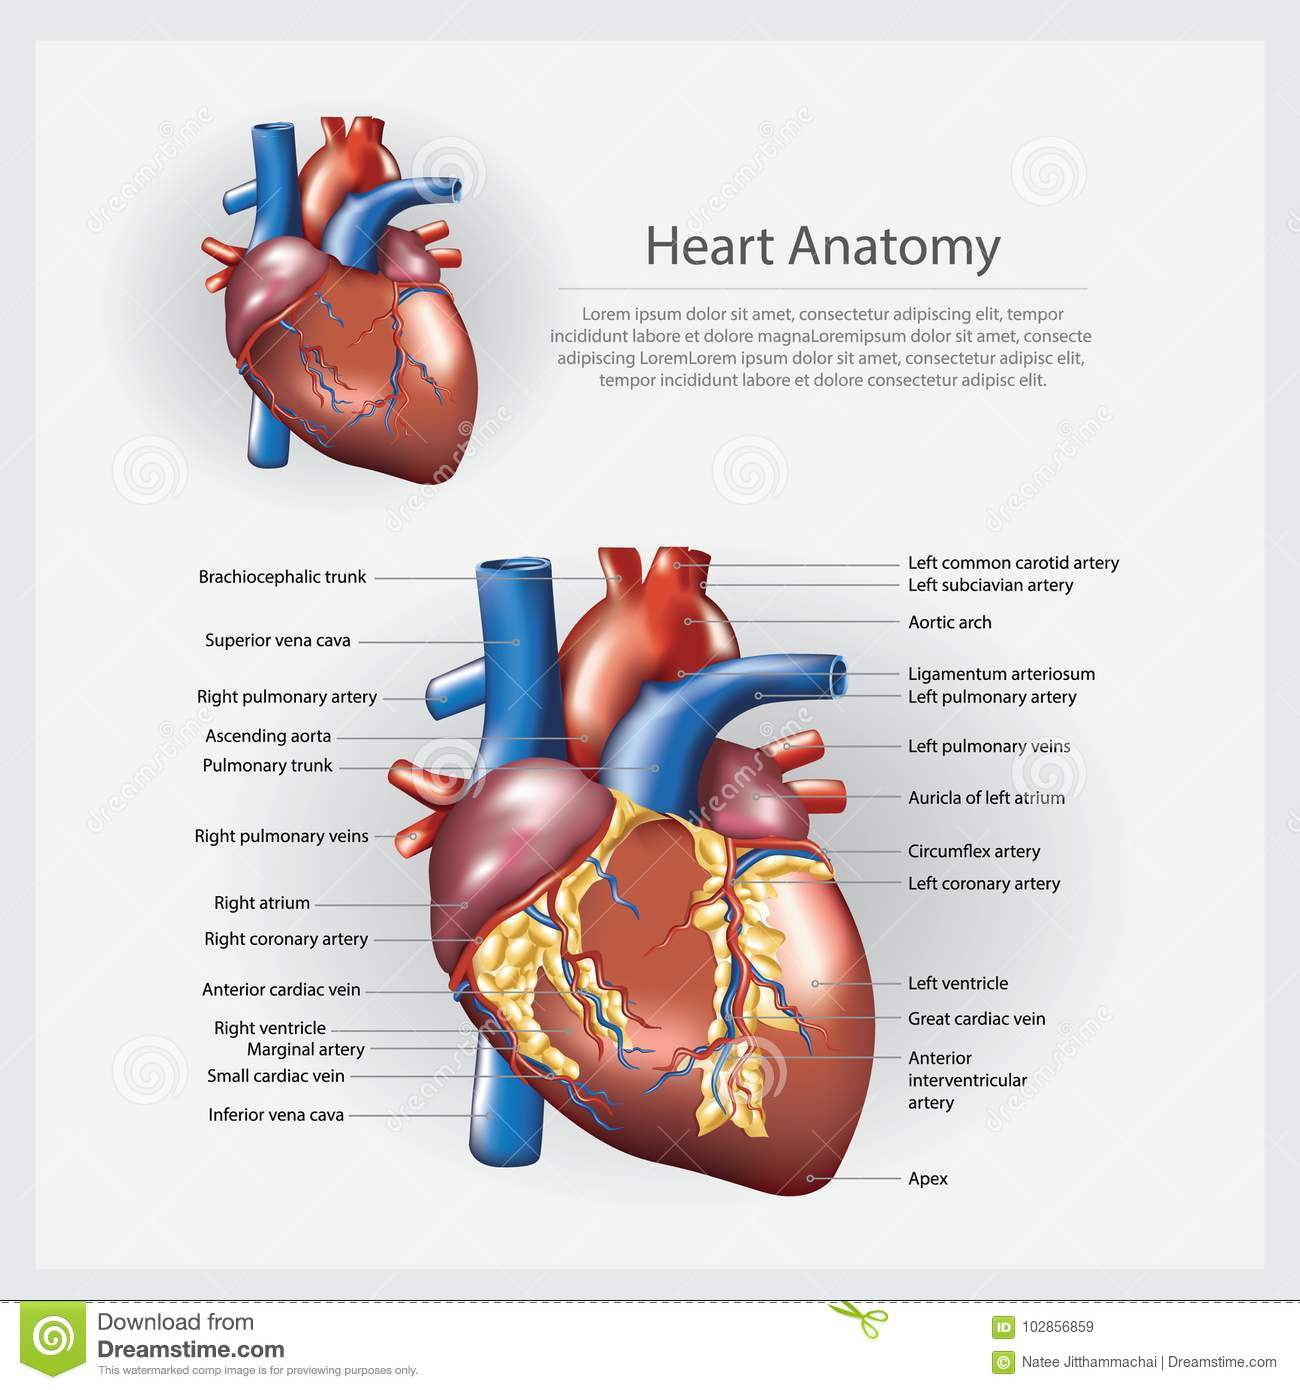 Human Heart Anatomy Vector Illustration Stock Vector - Illustration ...